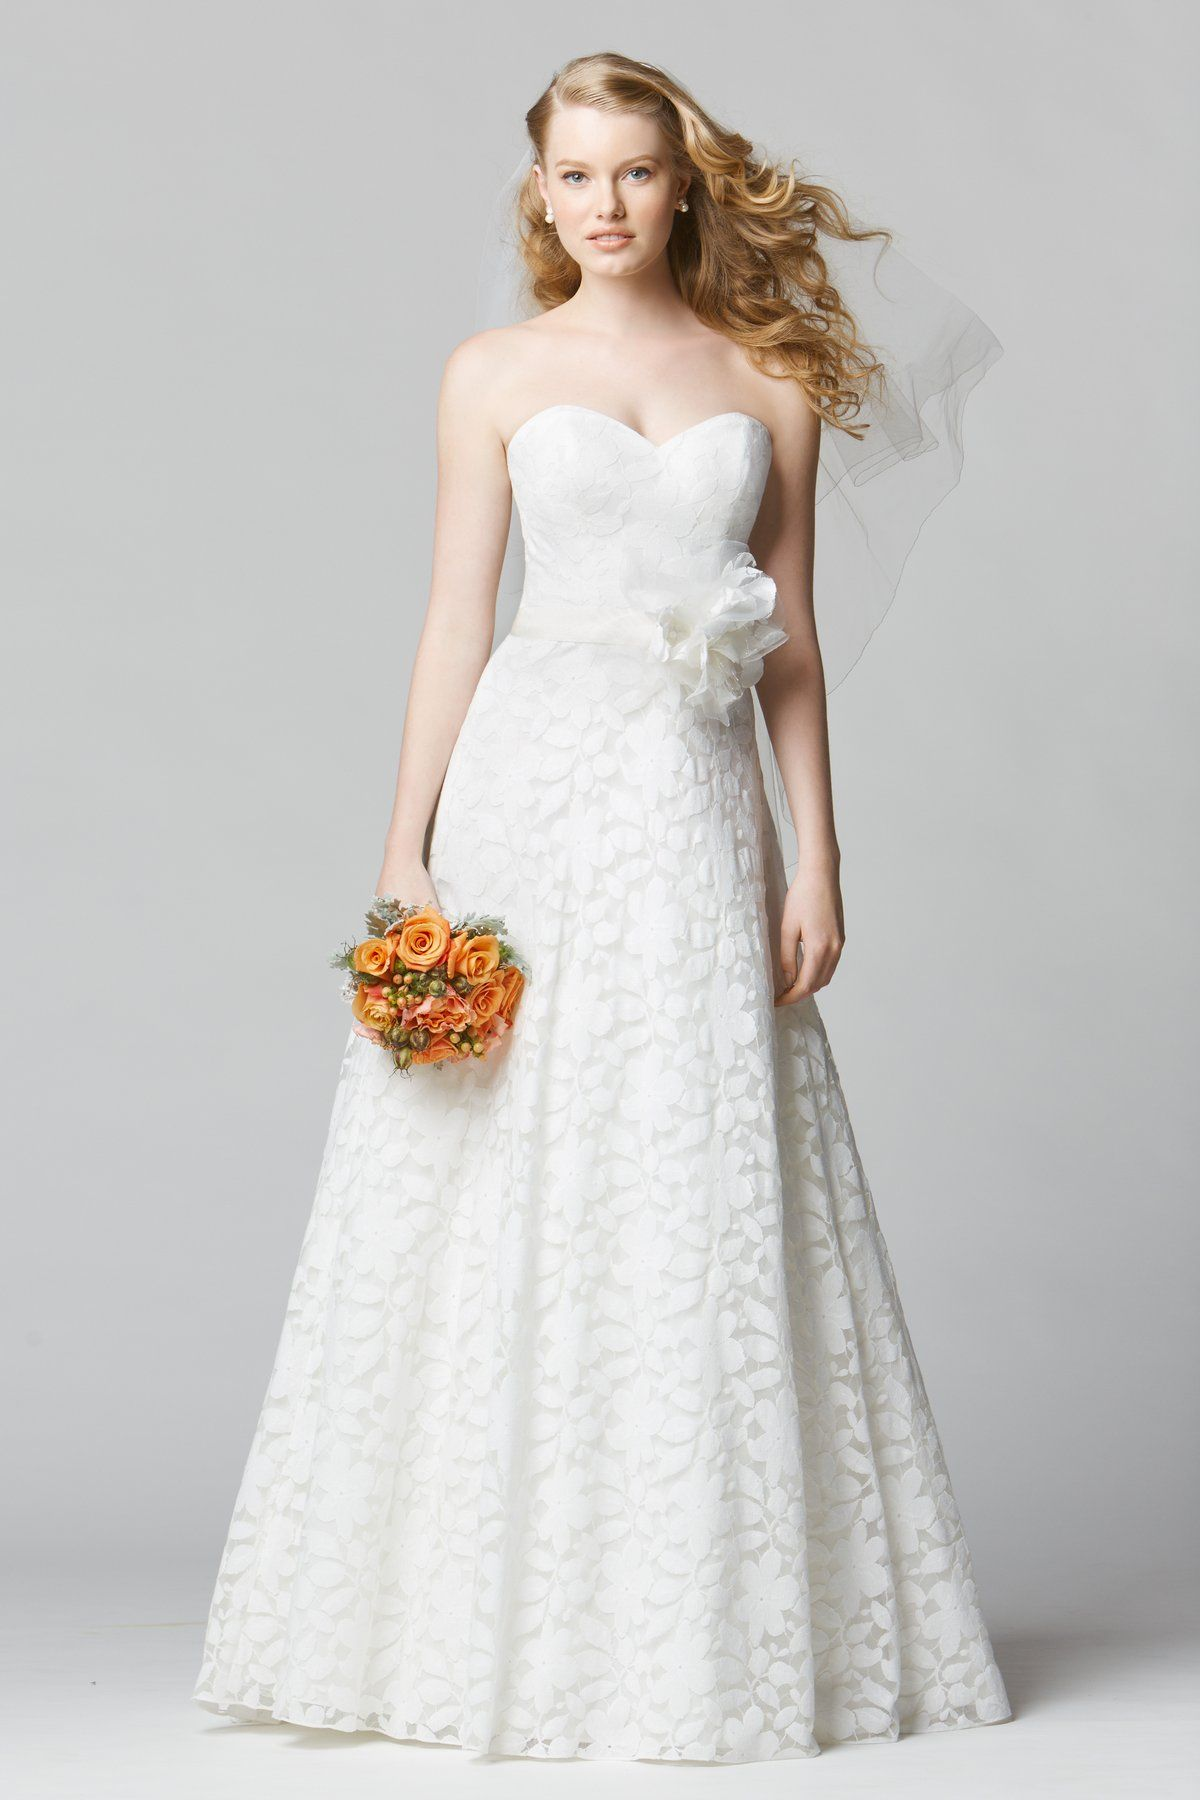 Wtoo brides rosa gown strapless sweetheart neckline allover lace